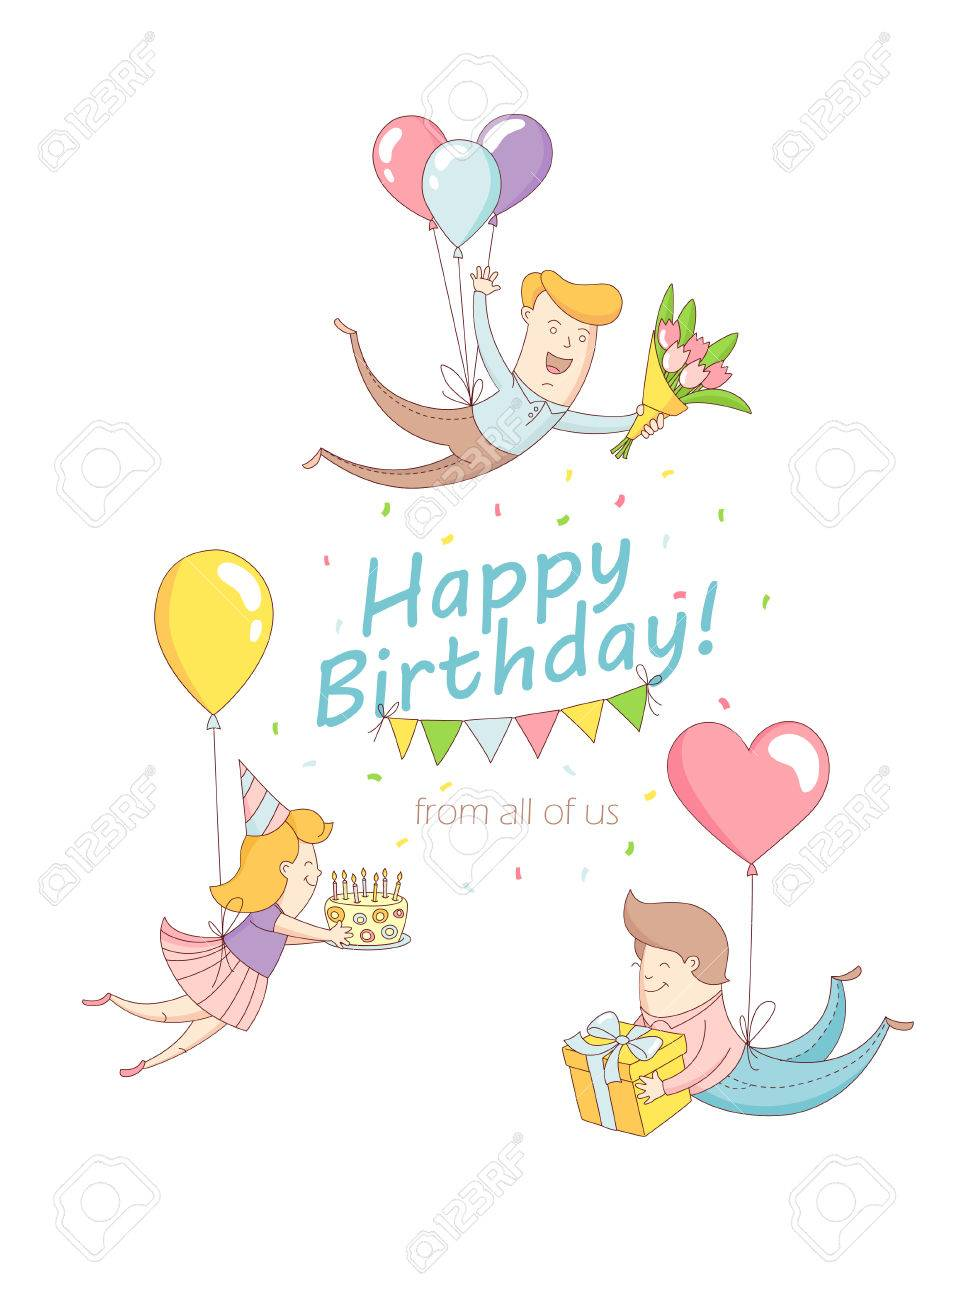 Vector illustration happy birthday party greeting card invitation vector illustration happy birthday party greeting card invitation funny people characters flying with baloons presents kristyandbryce Gallery